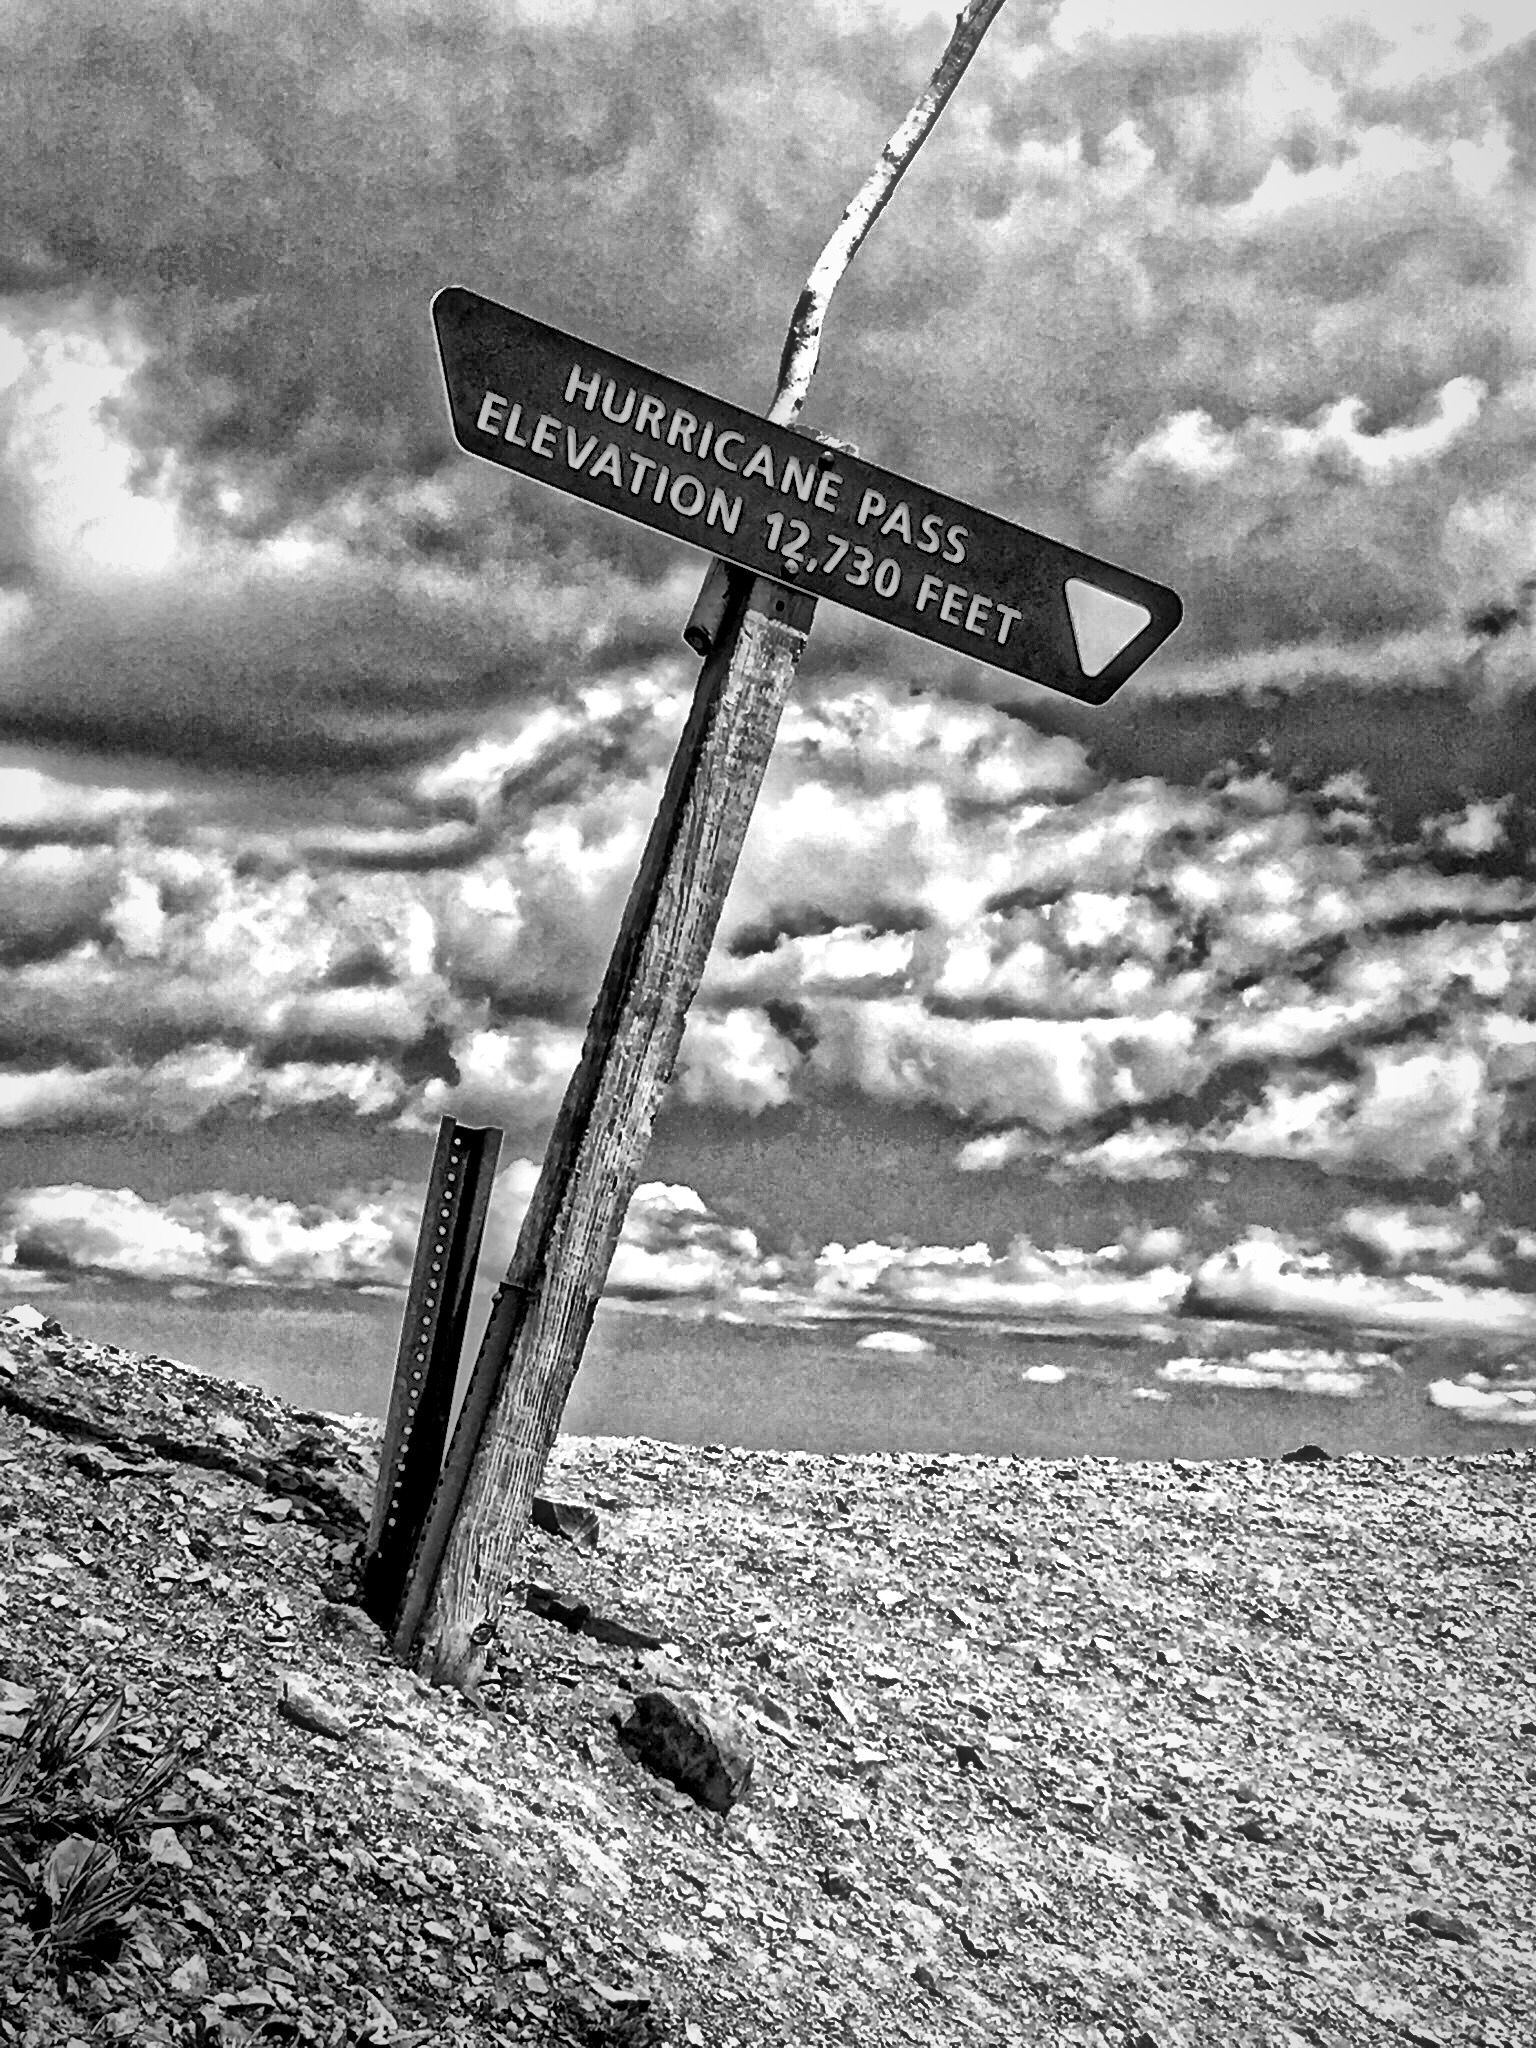 Hurricane Pass Marker Sign On The Alpine Loop Trail Near Ouray Co Travel Photography Alpine Loop Ouray